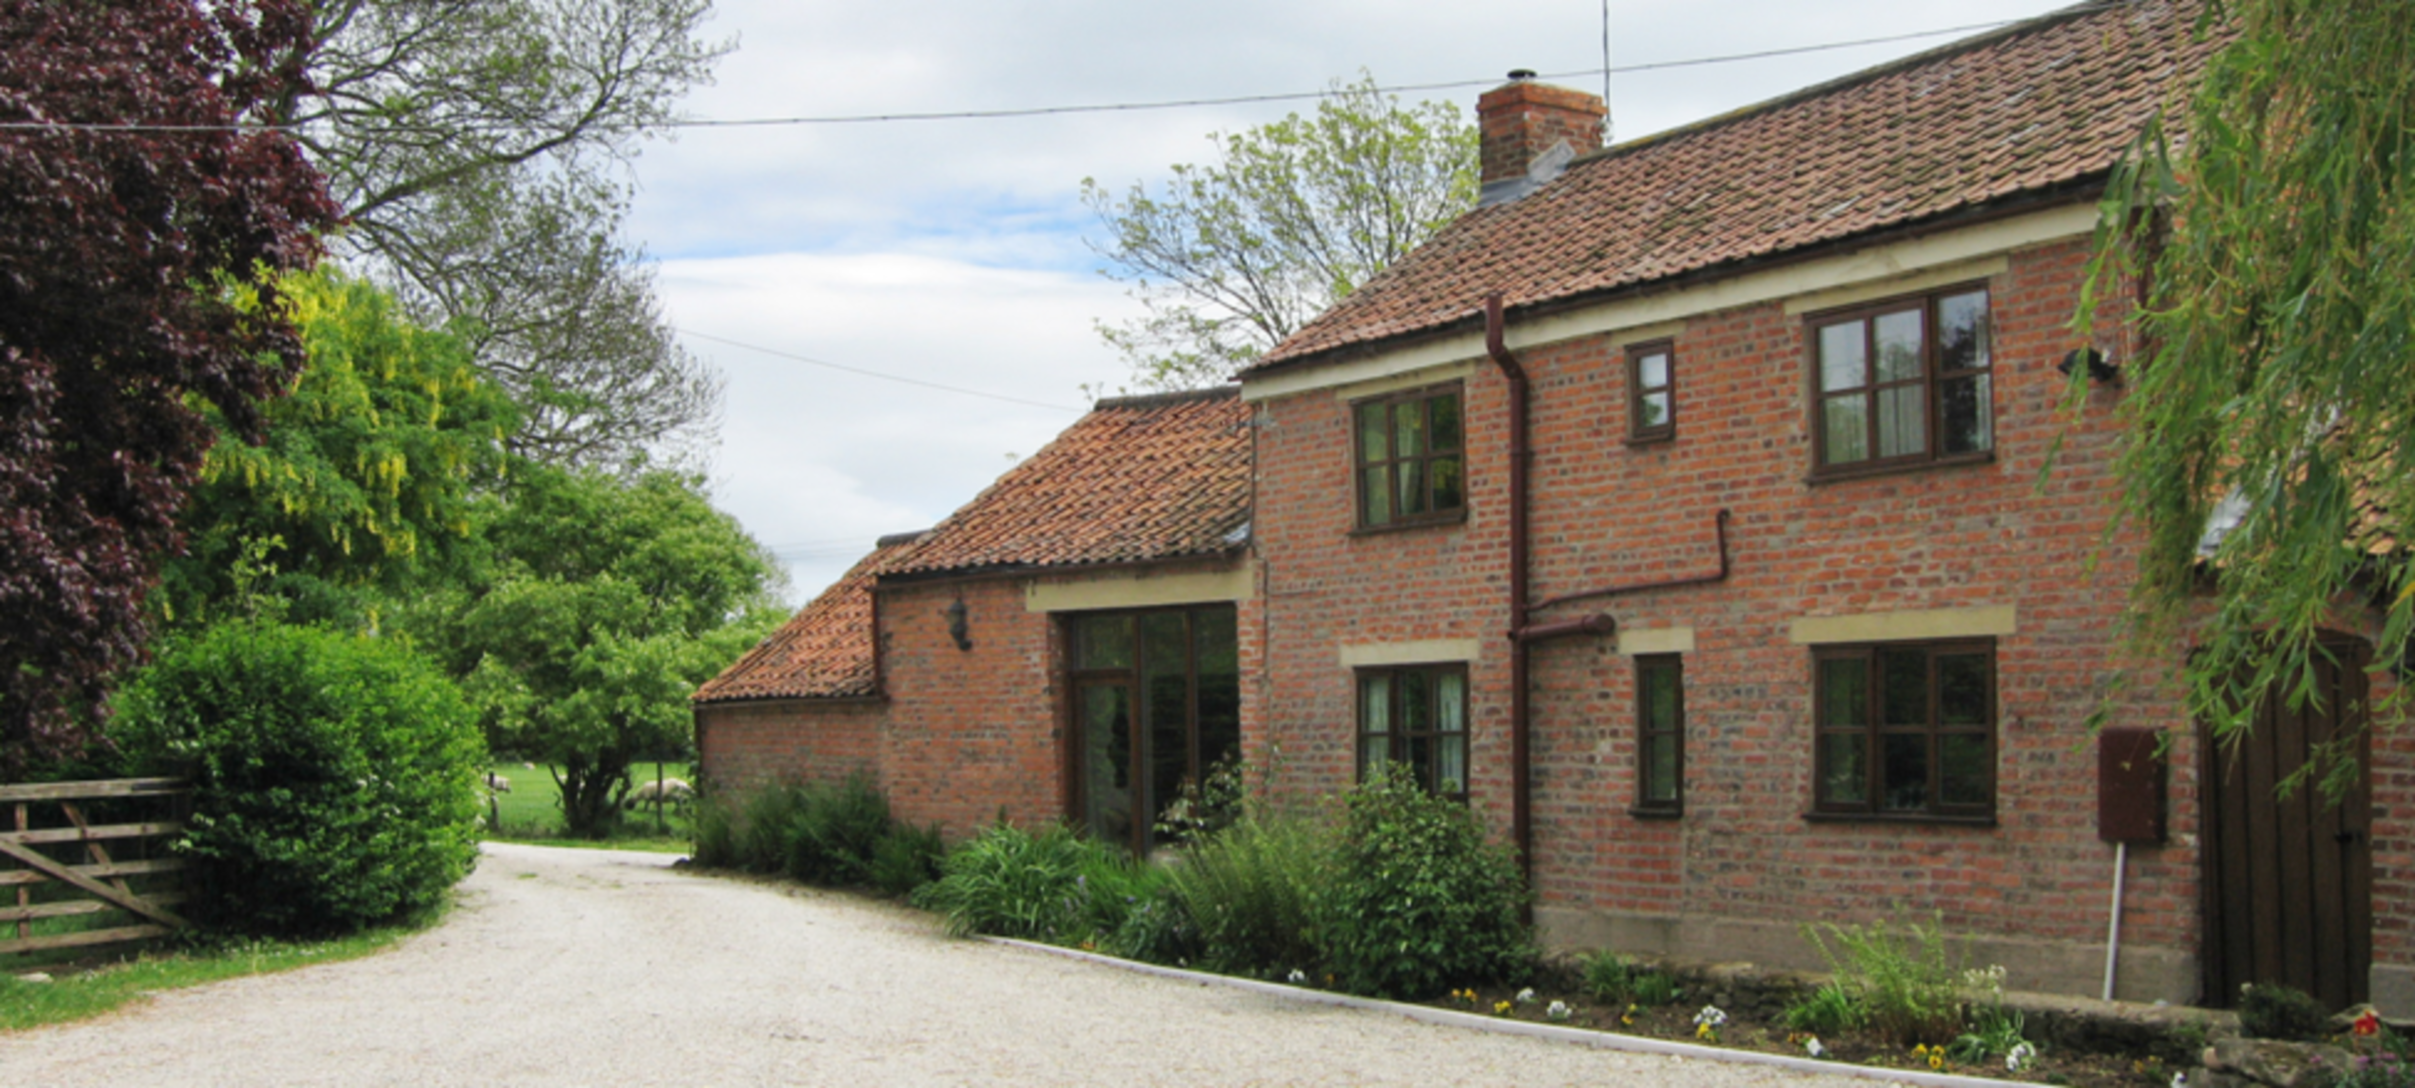 A large brick building with grass in front of a house at Brickfields Farm.